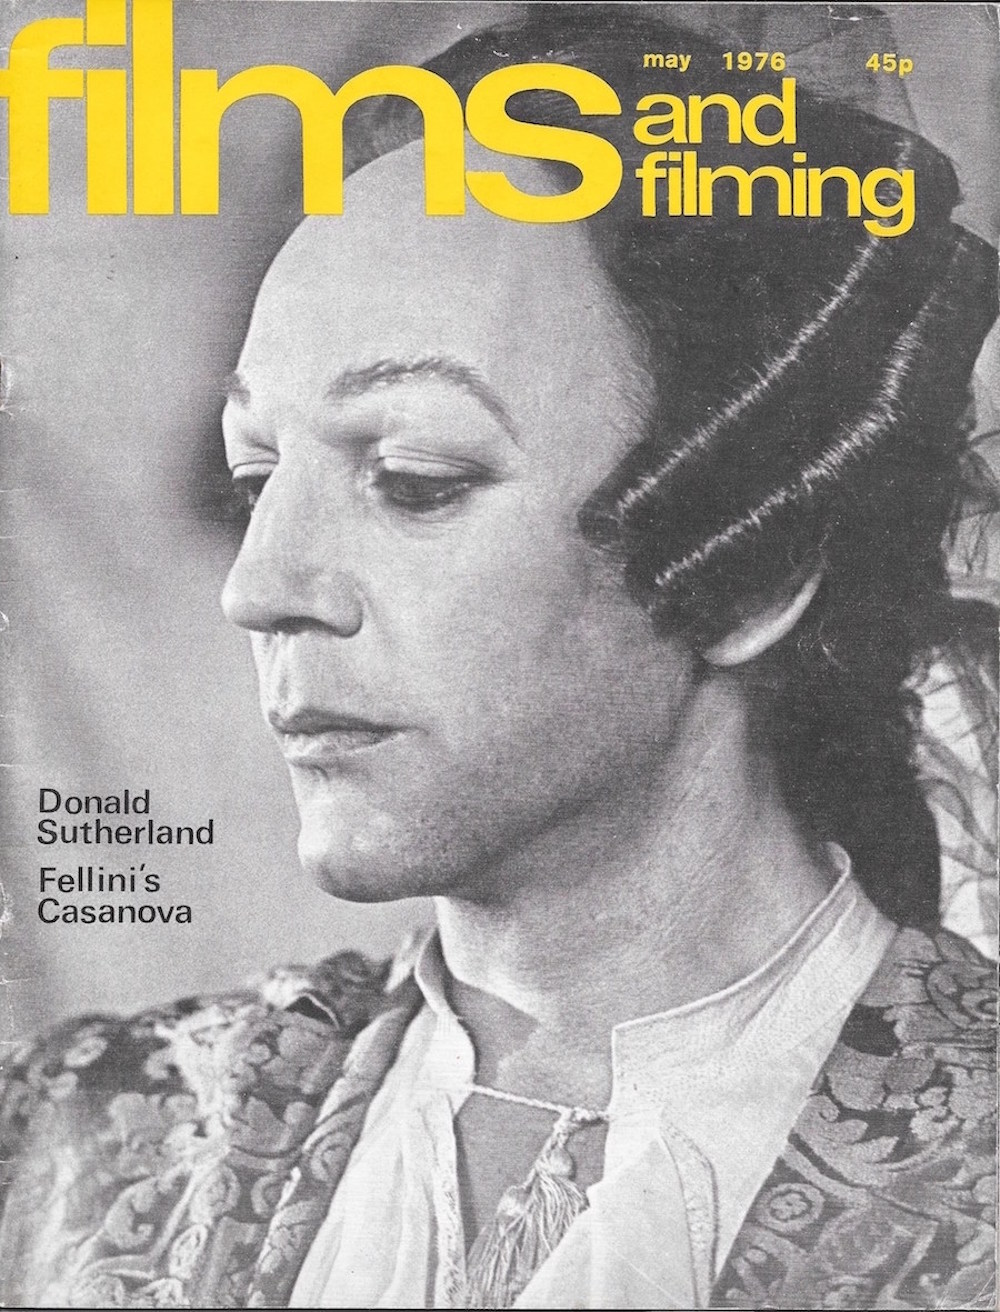 Films and Filming, 1976, magazines, Donald Sutherland, Casanova, Fellini